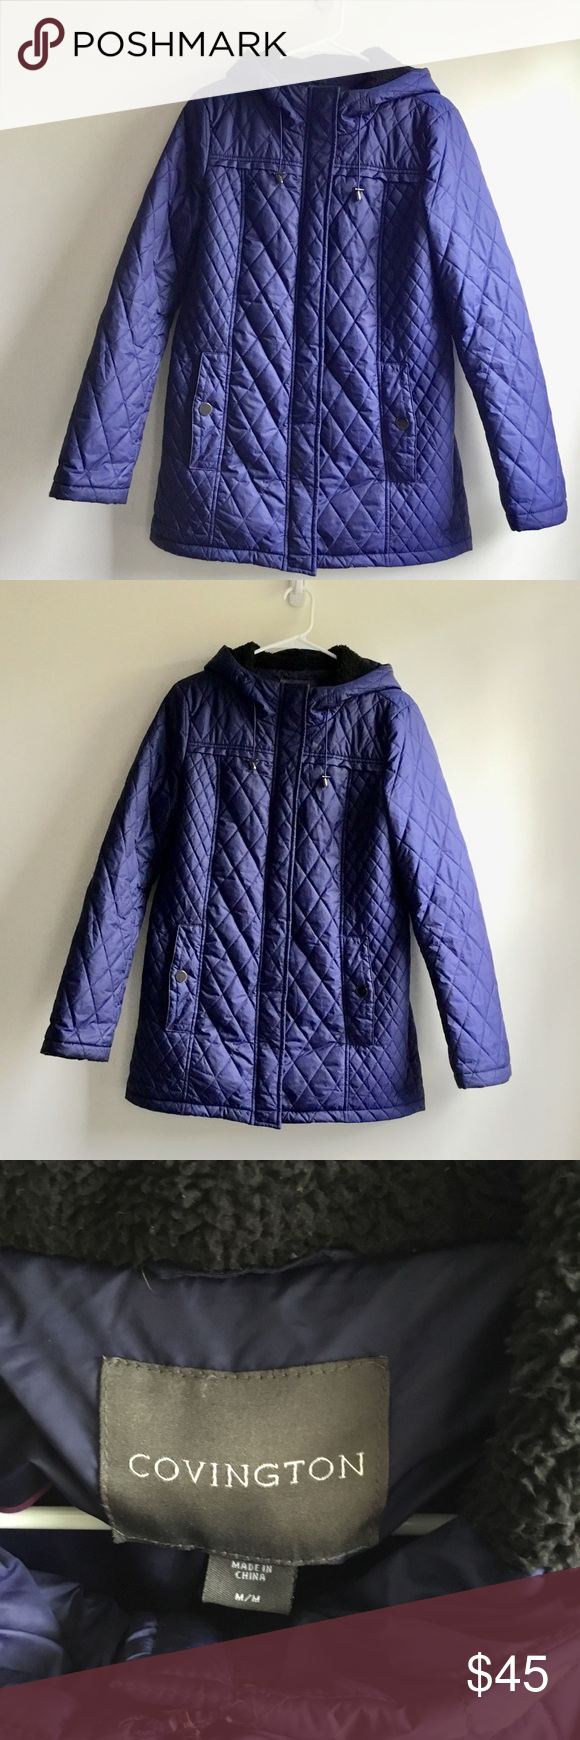 Covington Puffer Long Jacket This Is A Quilted Longer Length Jacket It Has A Fuzzy Hood Pockets And Has A Double Zipper Long Jackets Clothes Design Jackets [ 1740 x 580 Pixel ]